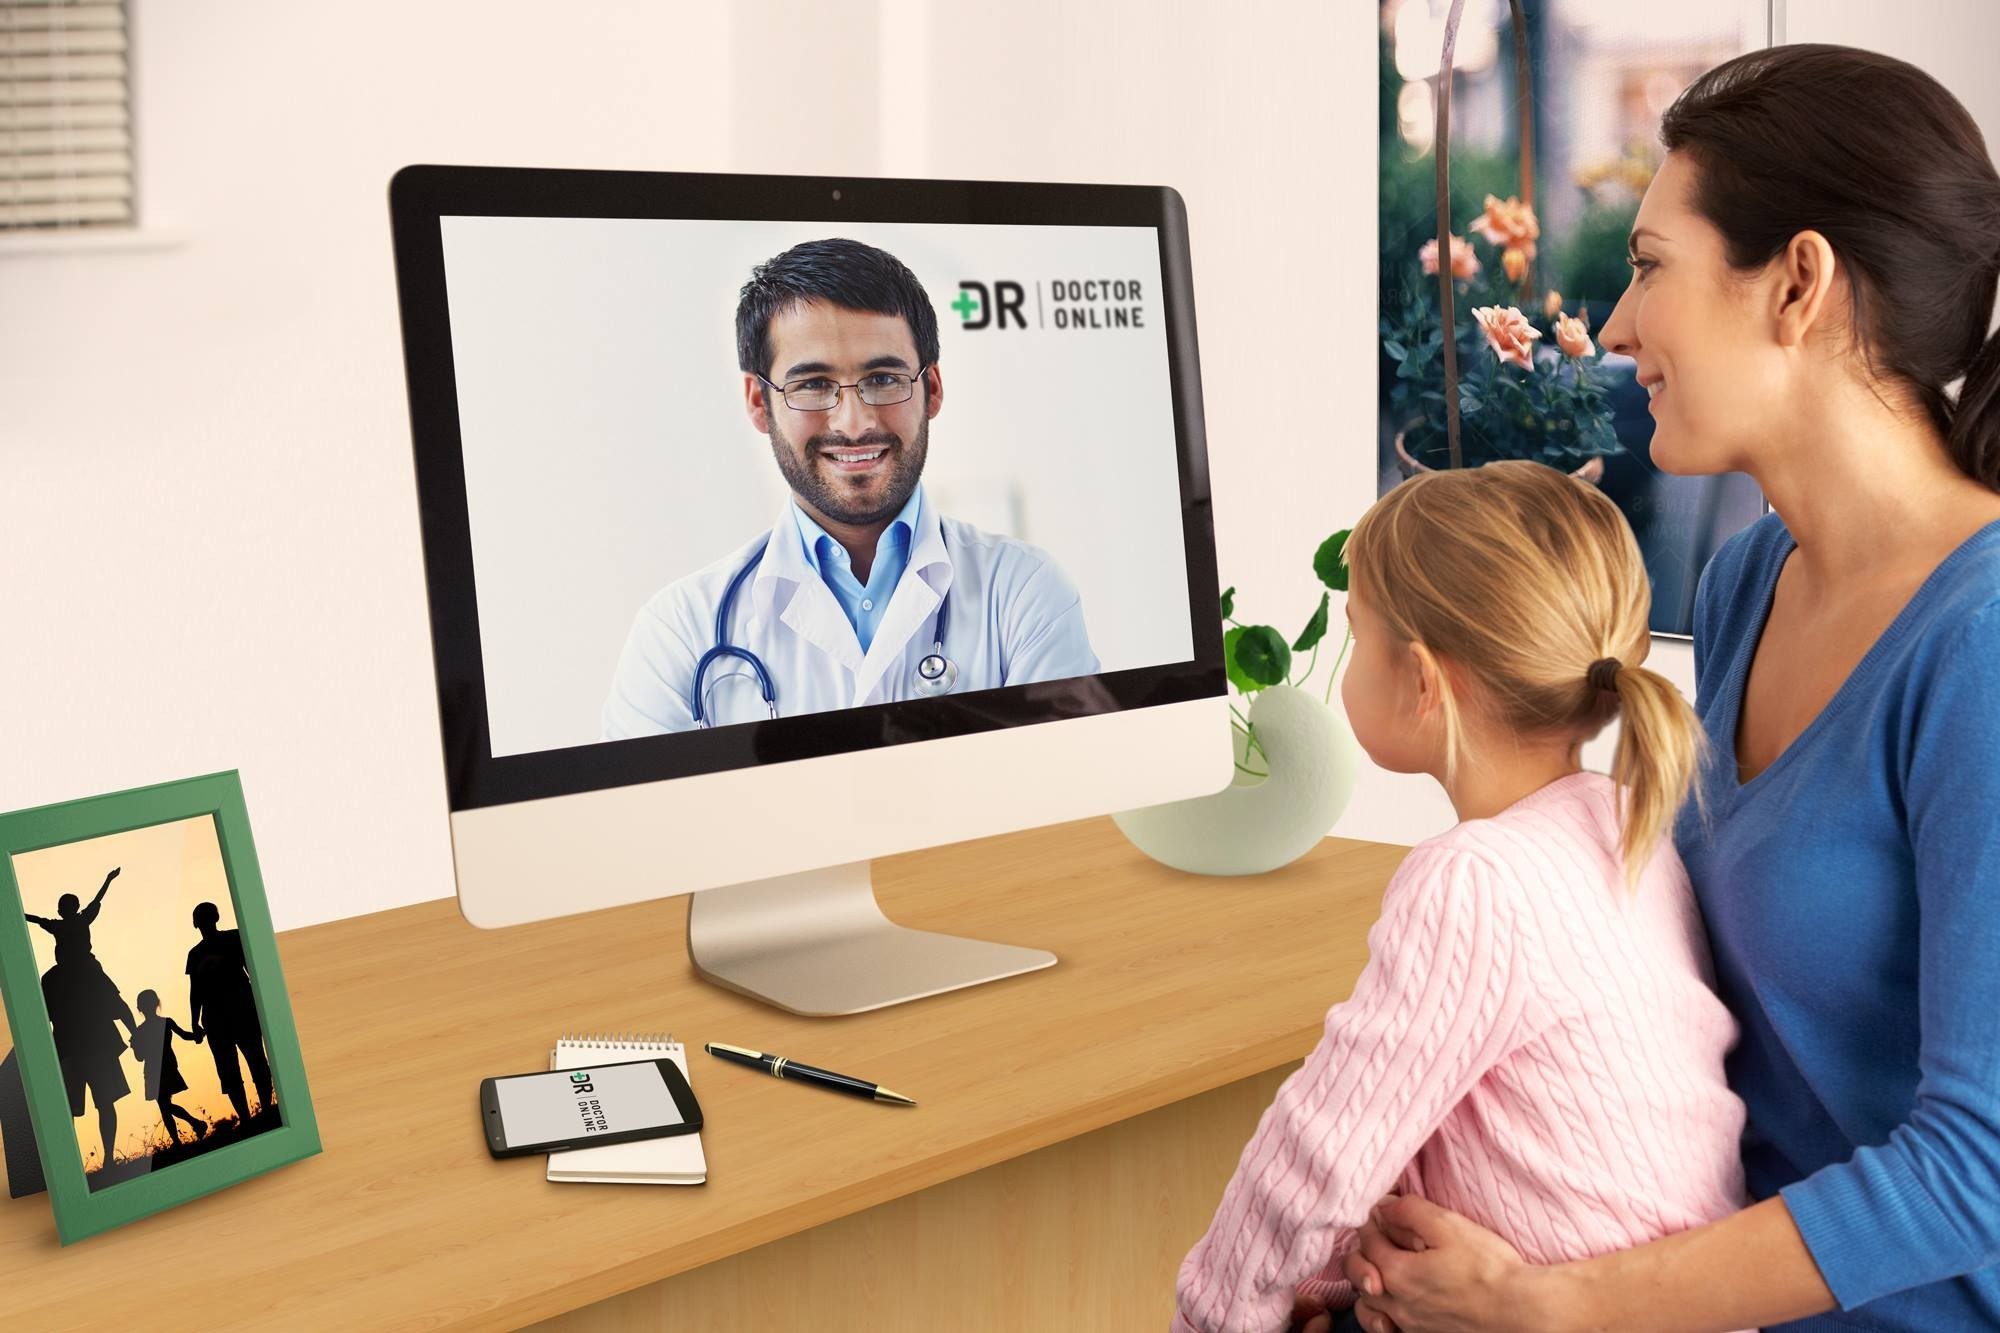 woman and girl looking at screen of doctor